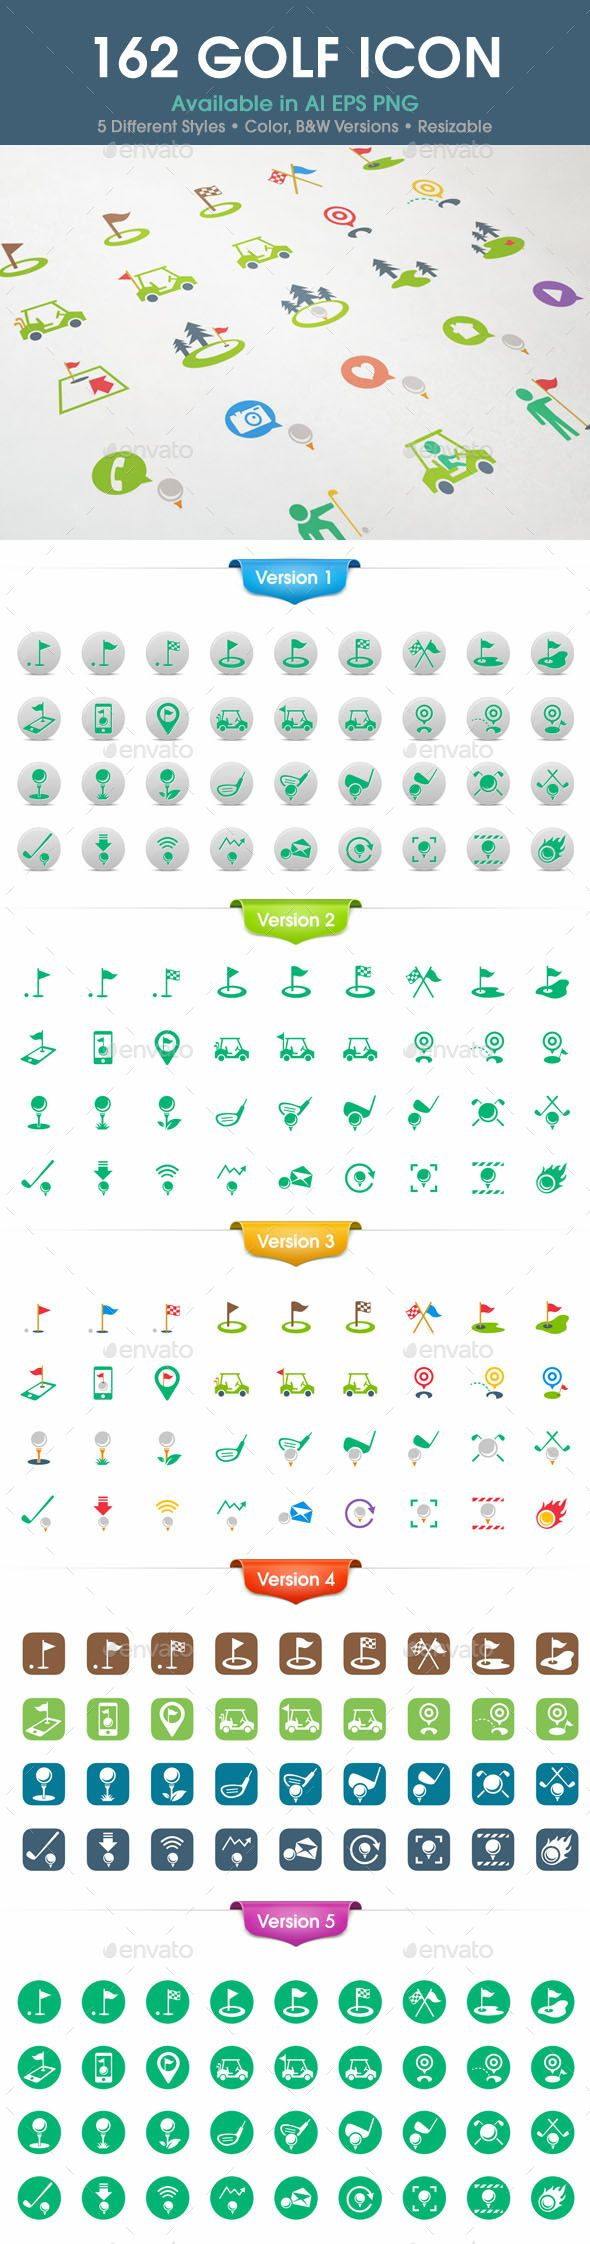 162 Golf Icons | Buy and Download: http://graphicriver.net/item/162 ...